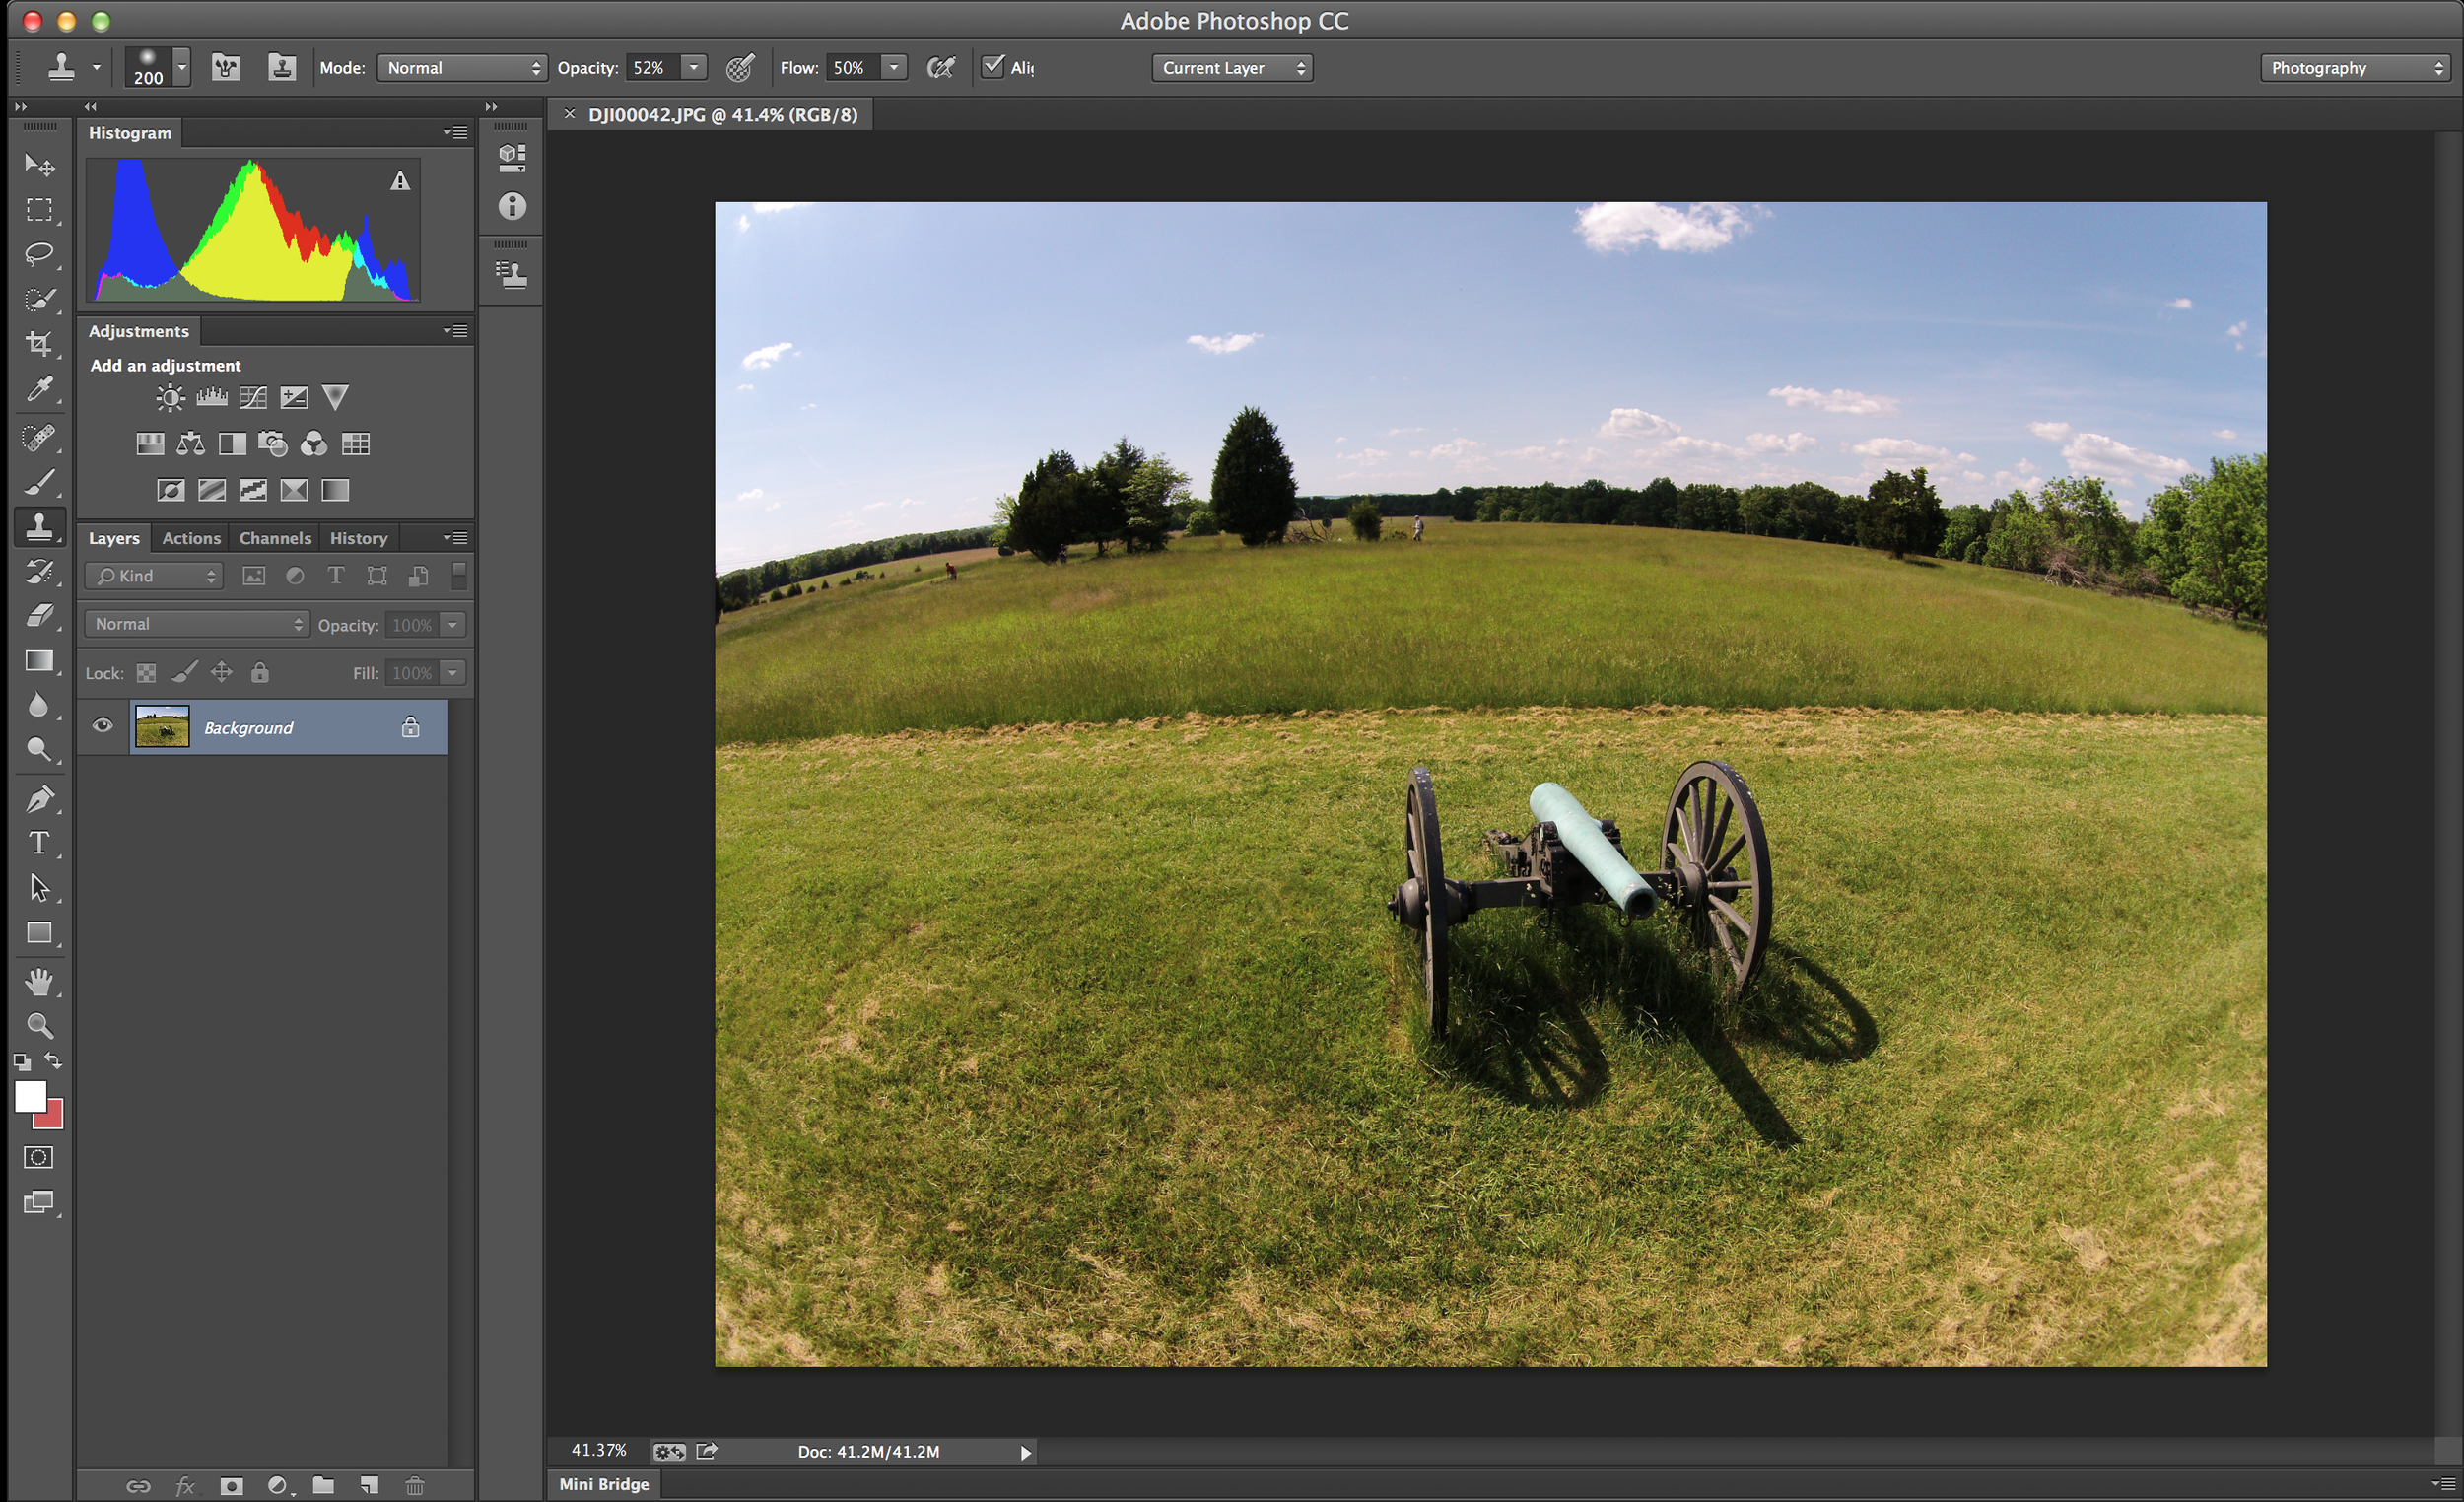 Before using the lens correction: the photograph has a severe fisheye effect that can be hard to correct manually.